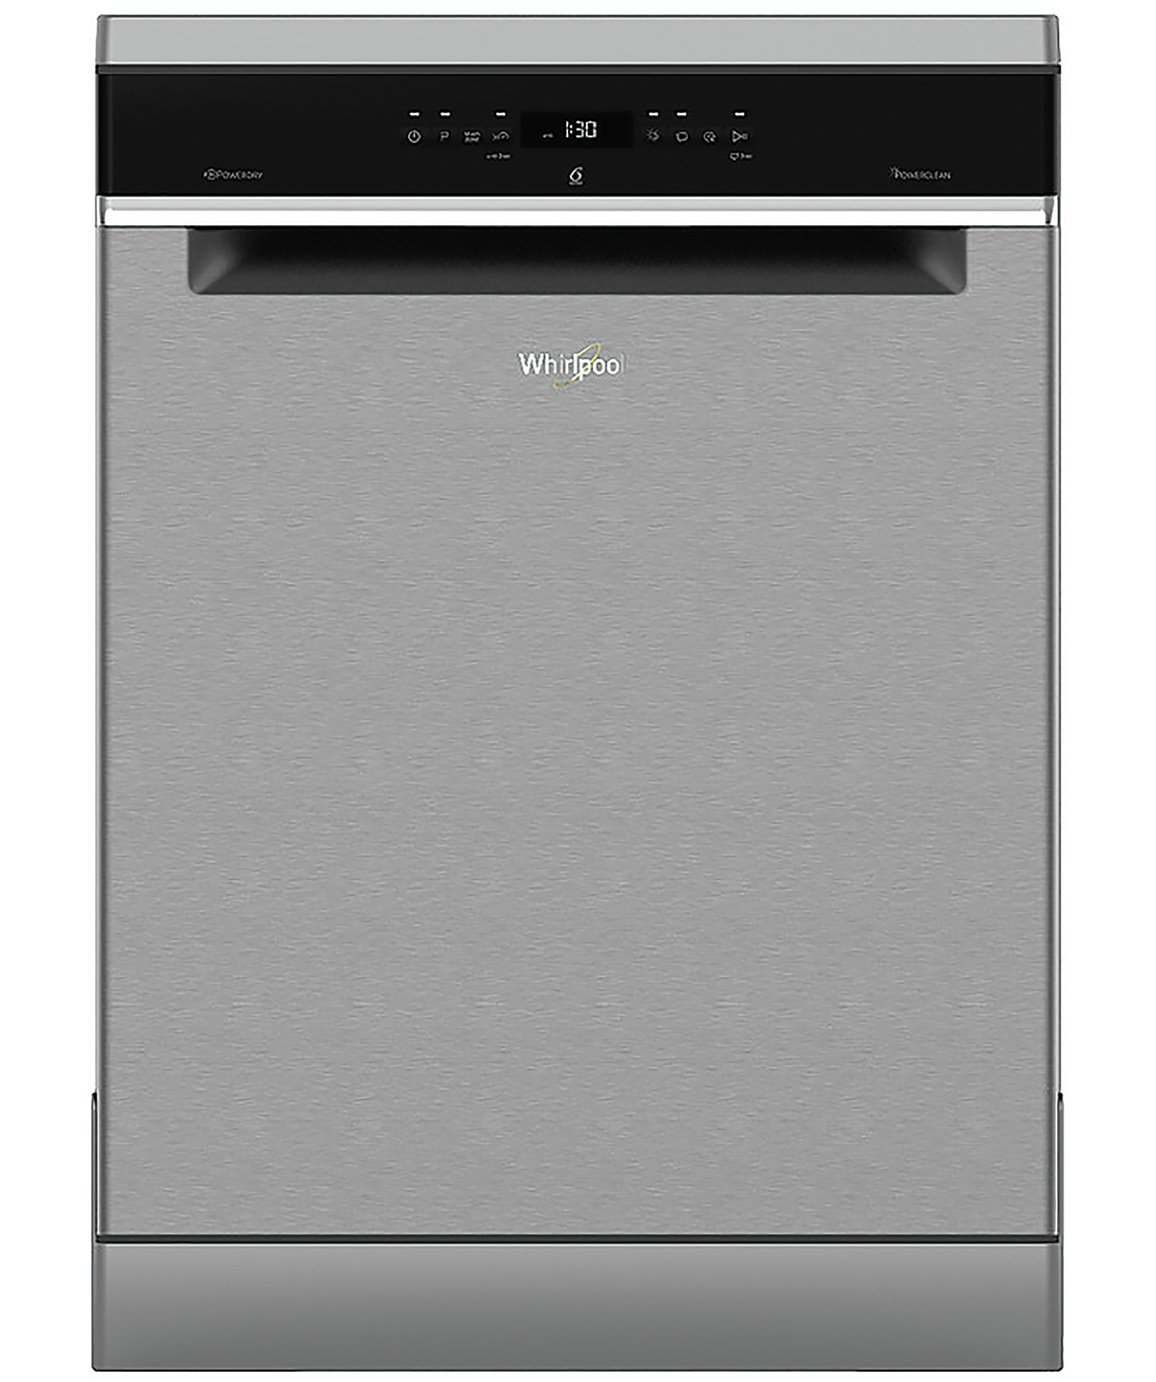 Whirlpool WFO 3P33 DL X Full Size Dishwasher - S/Steel